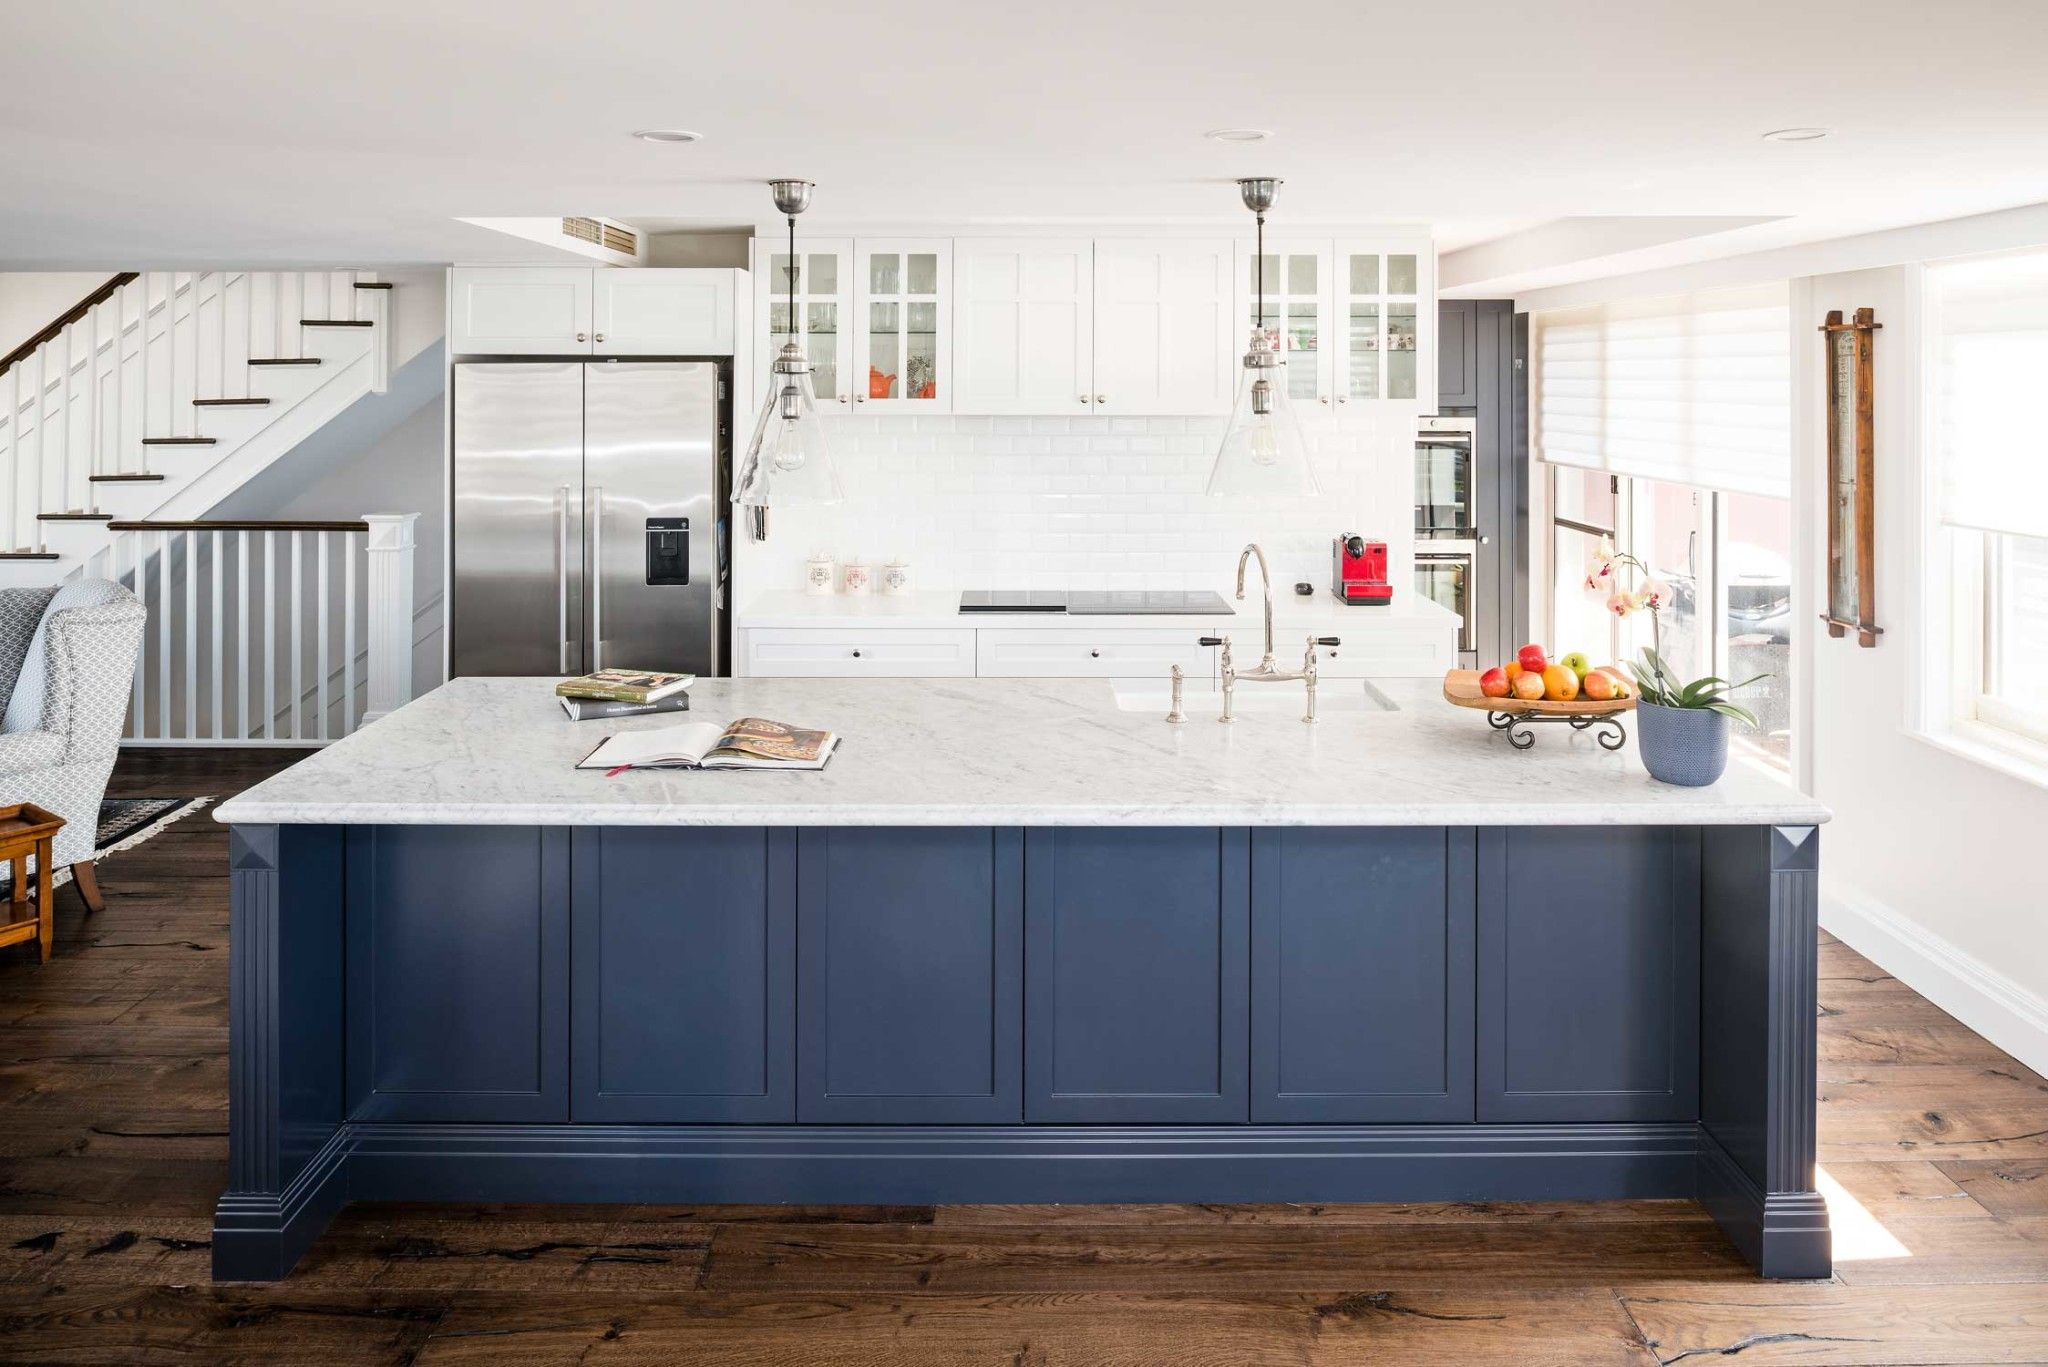 Check out the story of a Hamptons style kitchen renovation in a ...